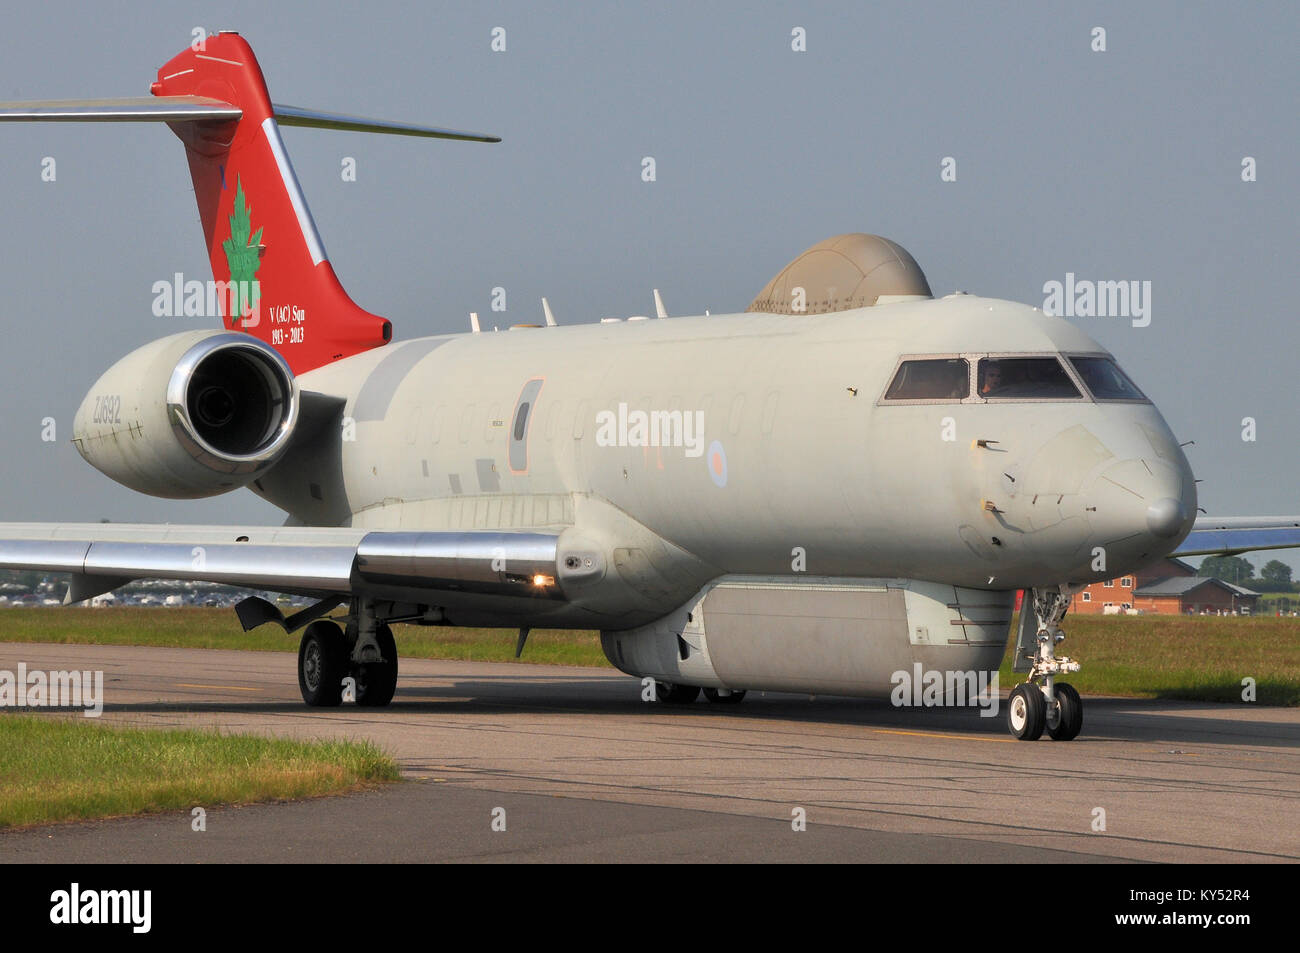 Raytheon Sentinel R1 airborne battlefield and ground surveillance aircraft operated by the Royal Air Force. Based - Stock Image